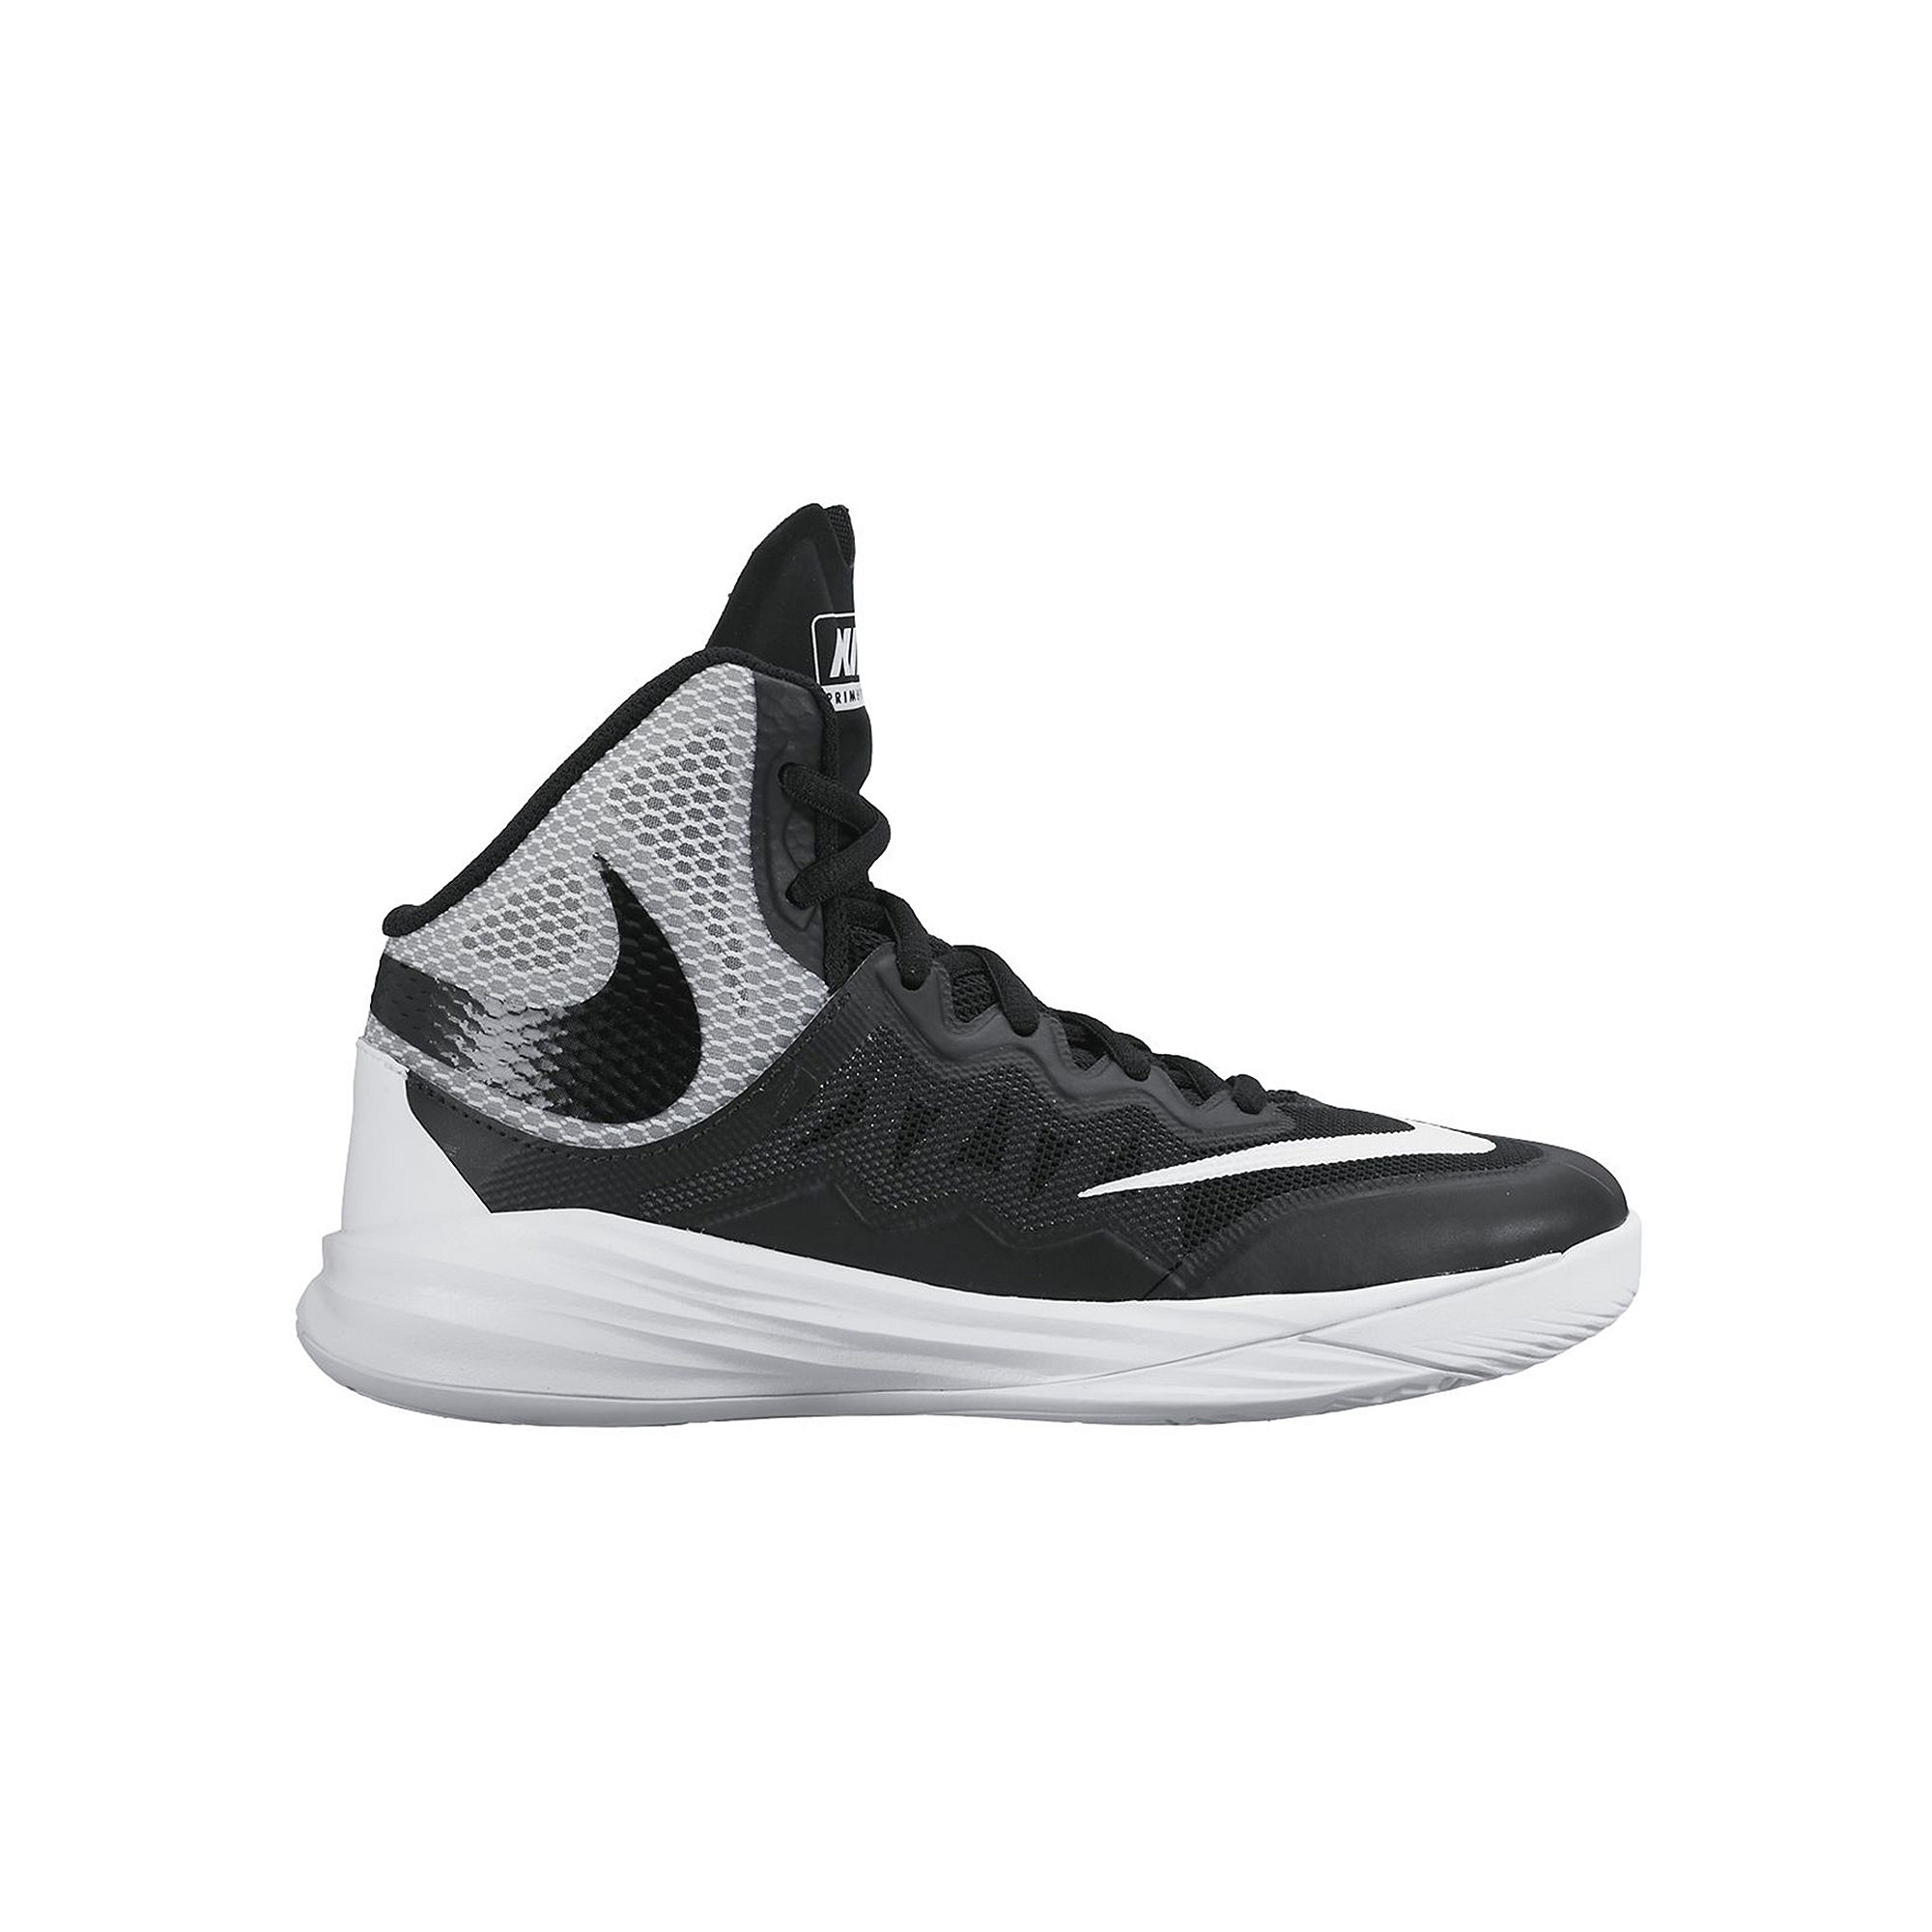 UPC 888410371527 product image for Nike Prime Hype DF Grade School Boys'  Basketball Shoes,